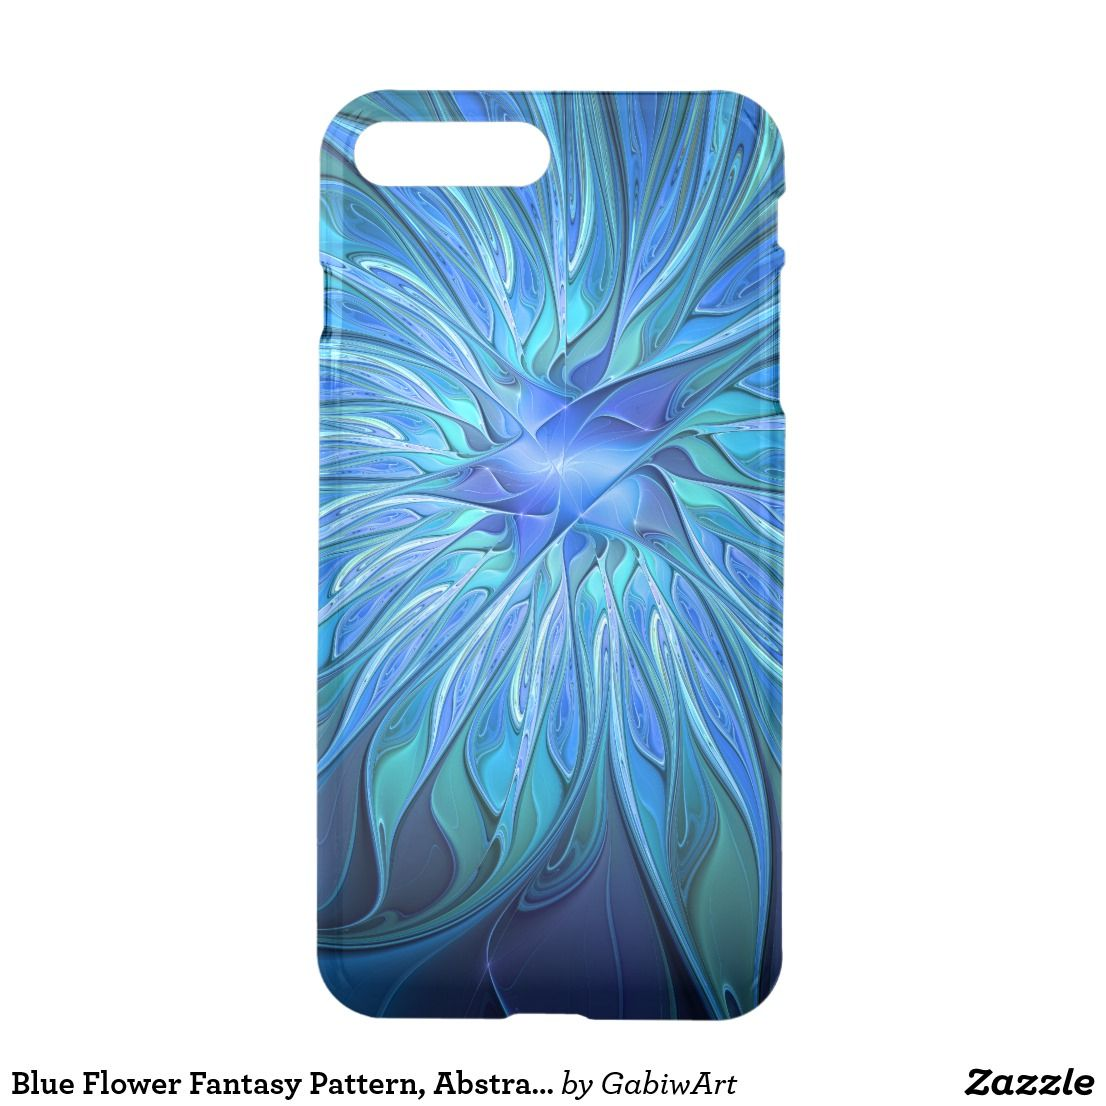 Blue flower fantasy pattern abstract fractal art iphone 8 plus7 blue flower fantasy pattern abstract fractal art iphone 8 plus7 plus case izmirmasajfo